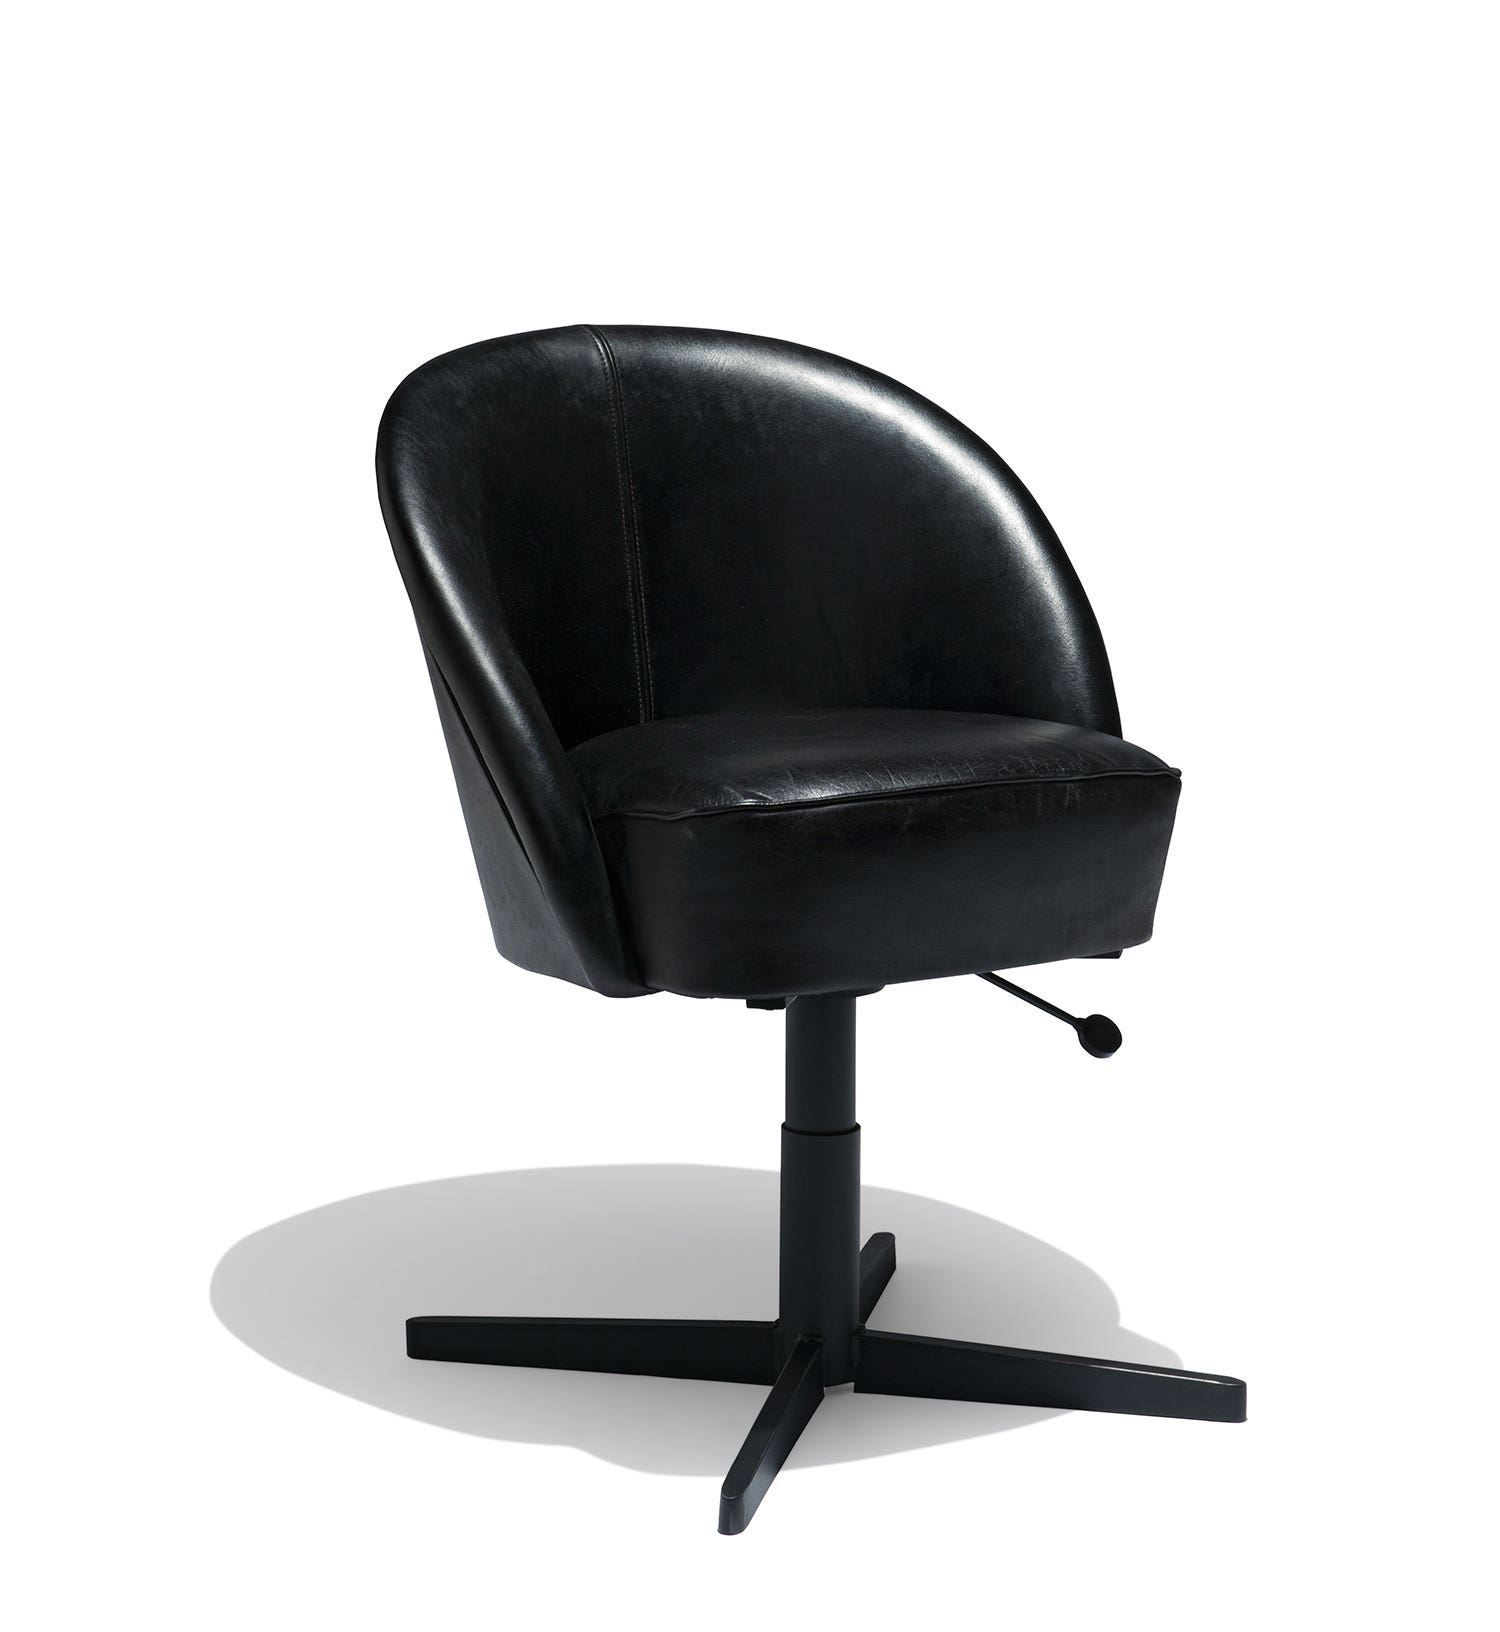 gardiner furniture upholstered home and chairs kale wolf chair best swivel furnishings products by